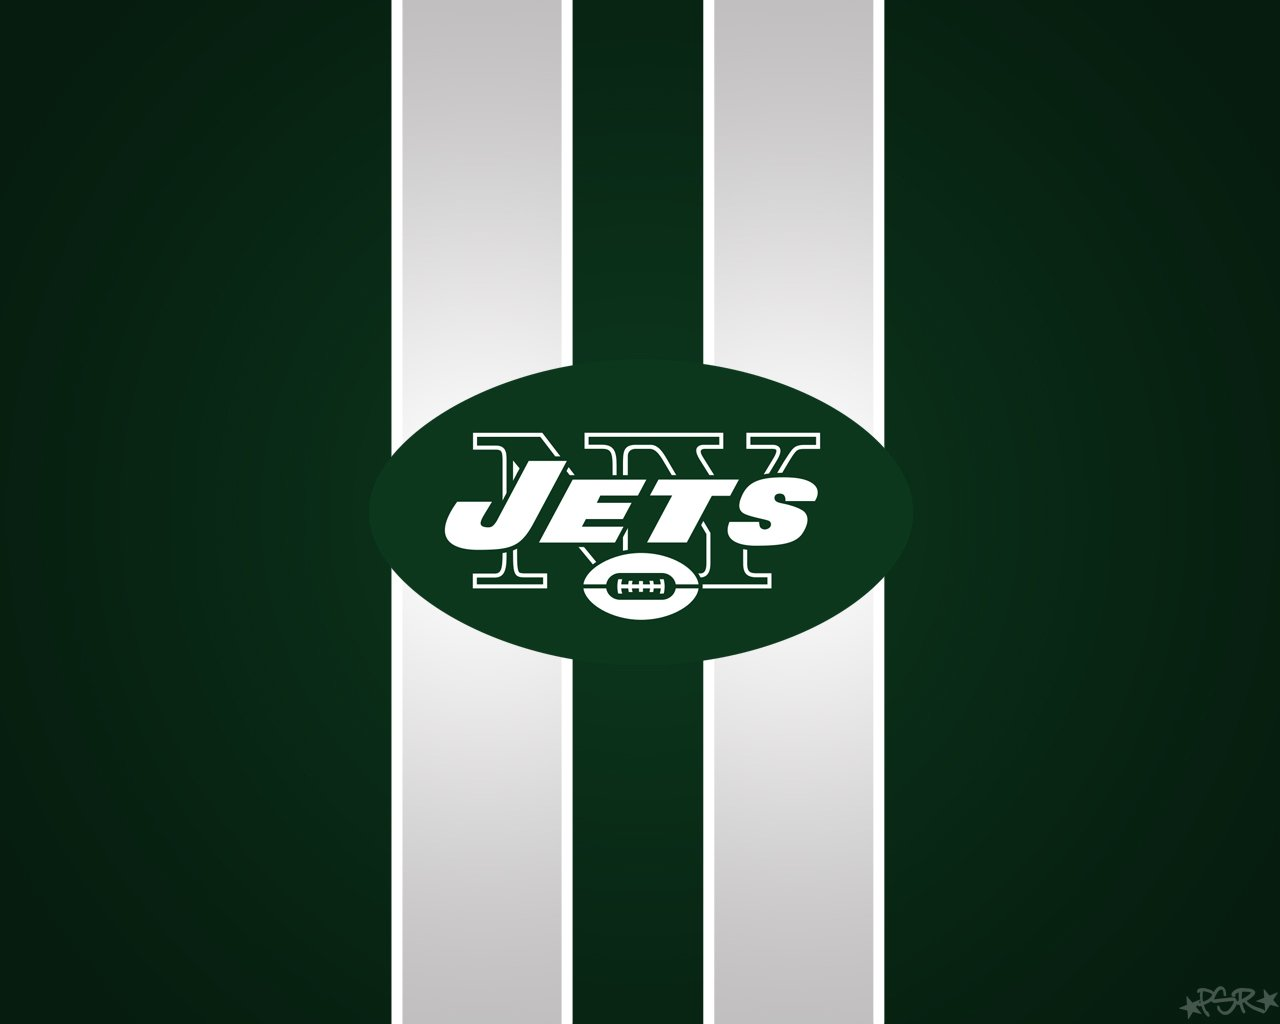 New York Jets Wallpaper